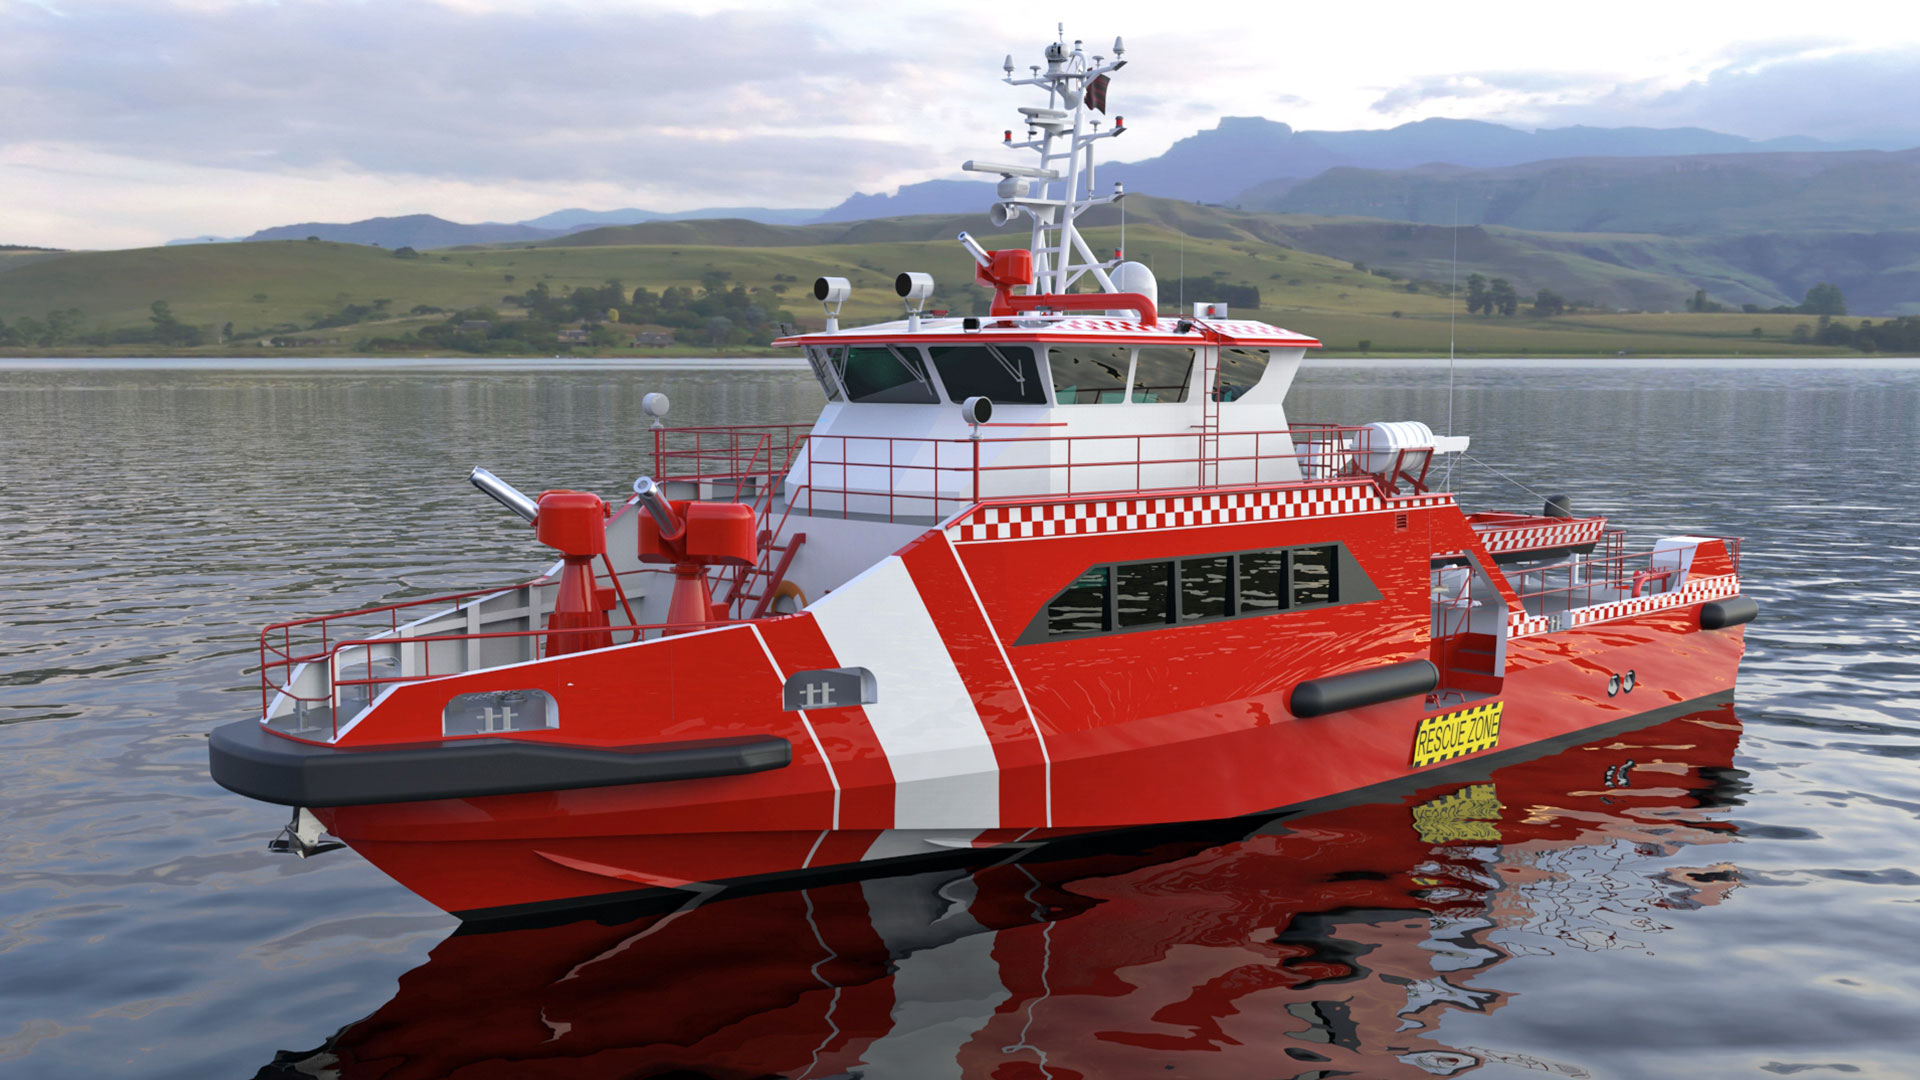 images/vessels/03-utility-support-craft/02-fire-fighting-vessels/03-ares-25-fifi/01_1614086788.jpg